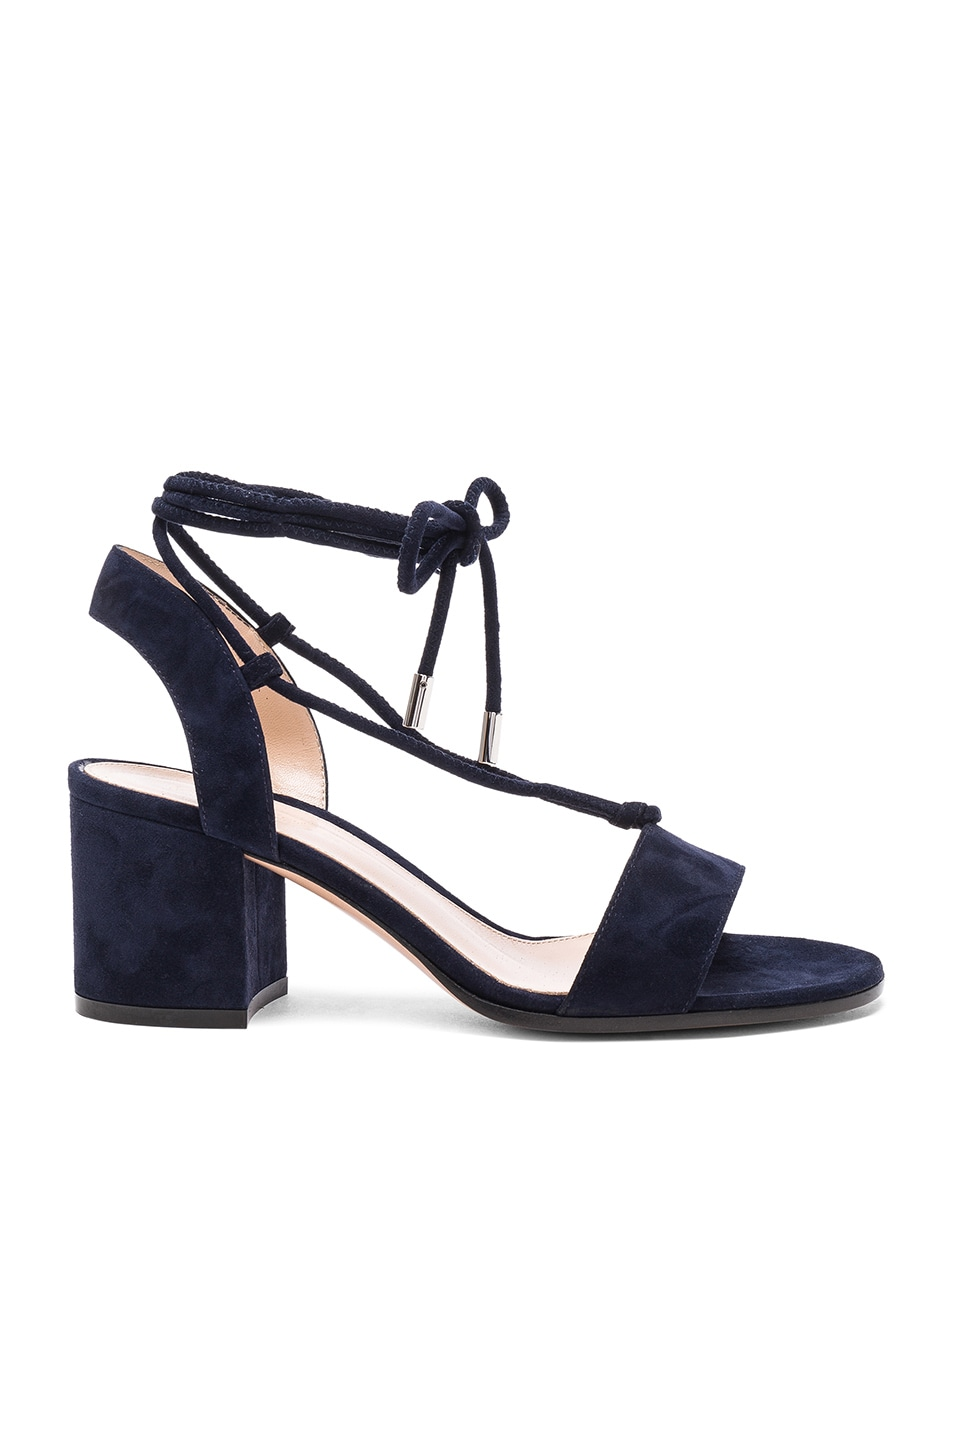 Image 1 of Gianvito Rossi Suede Lace Up Leather Sandals in Denim